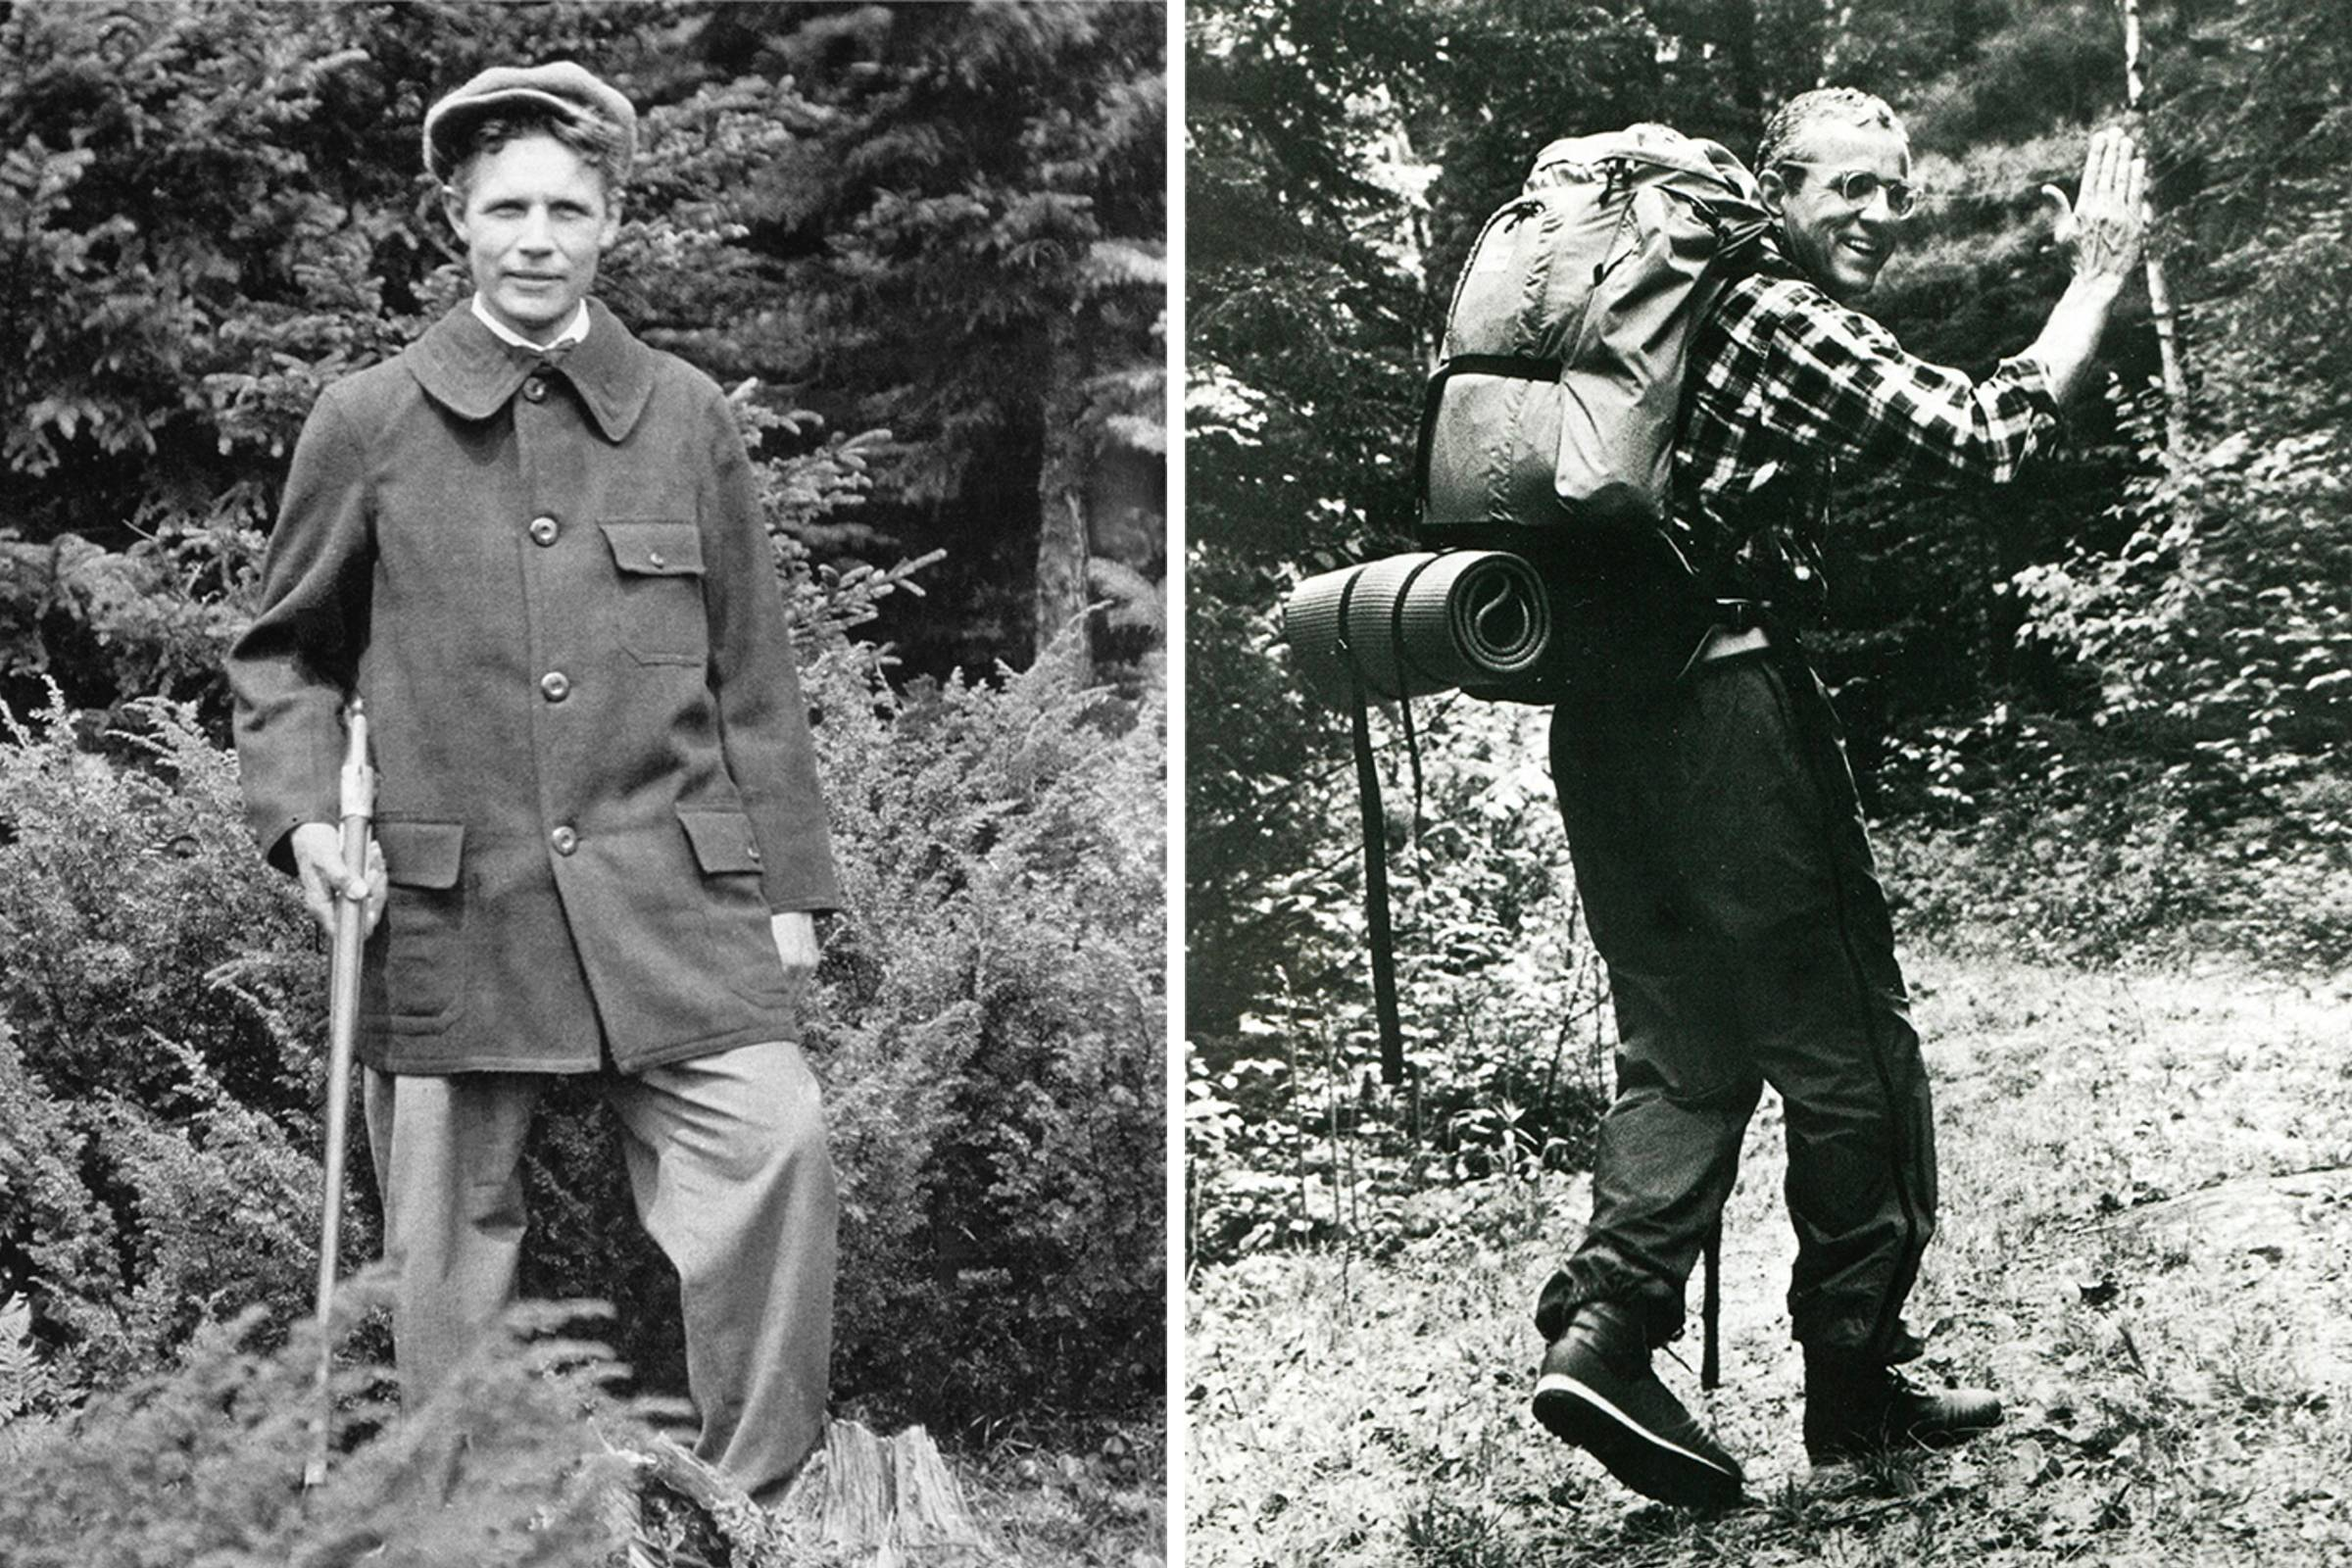 Founder Leon Leonwood Bean (in the original Maine Safety Hunting Coat) in 1917 (left), Leon Gorman (grandson of founder L.L. Bean and the company's second-ever president) hiking in 1985